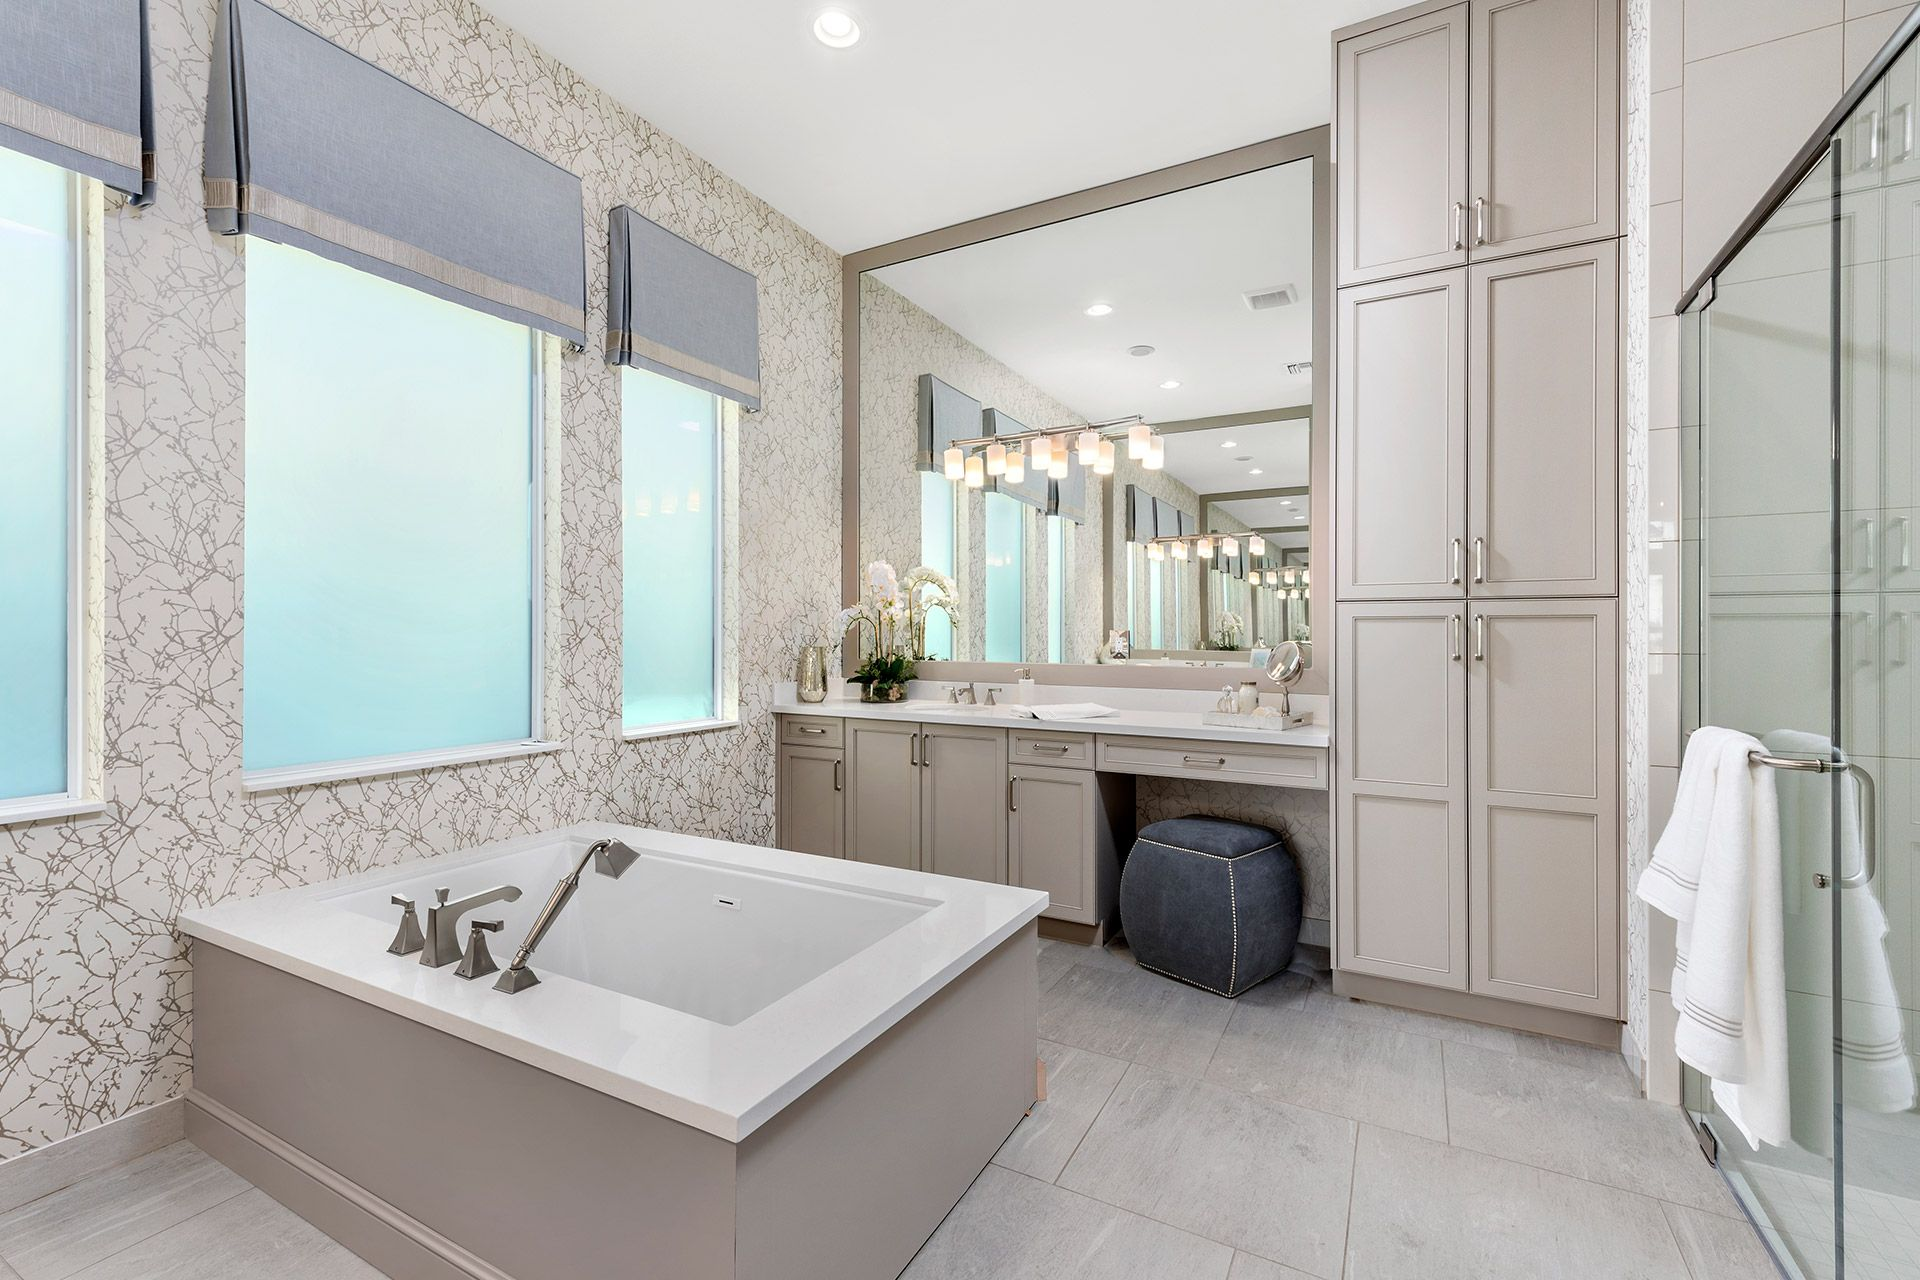 Bathroom featured in the Jade By GL Homes in Palm Beach County, FL